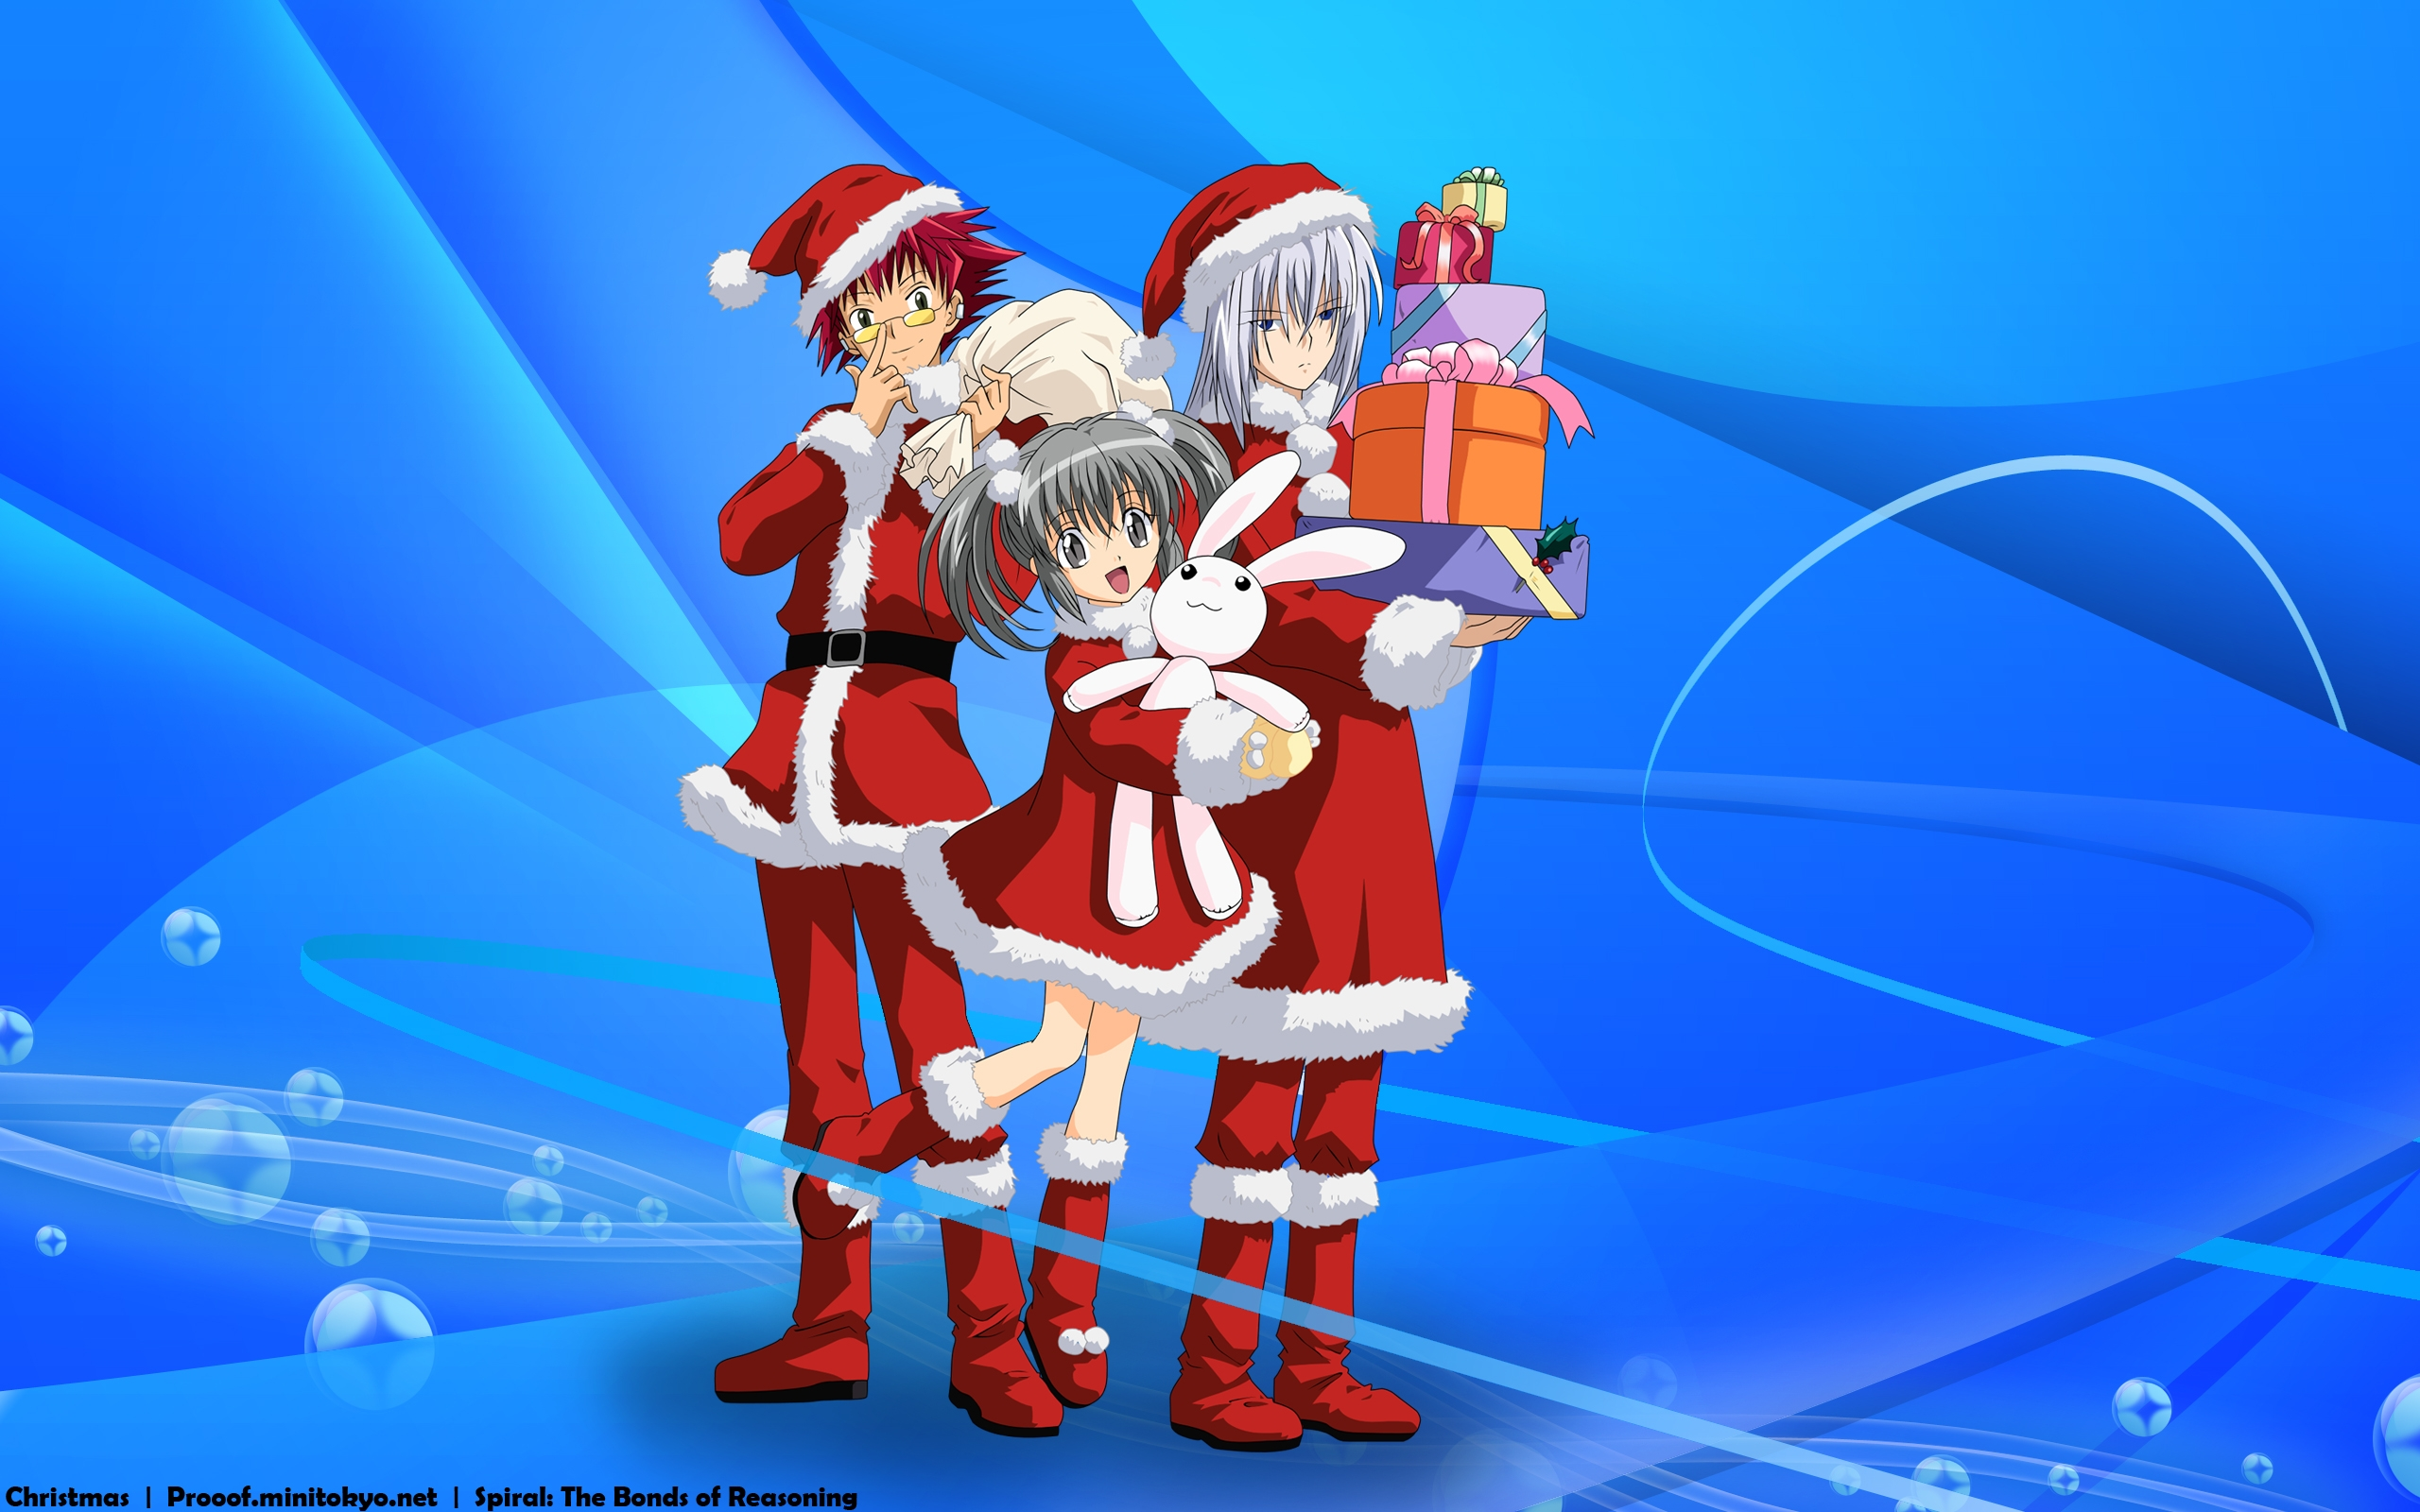 Anime merry christmas hd wallpaper - Anime merry christmas wallpaper ...